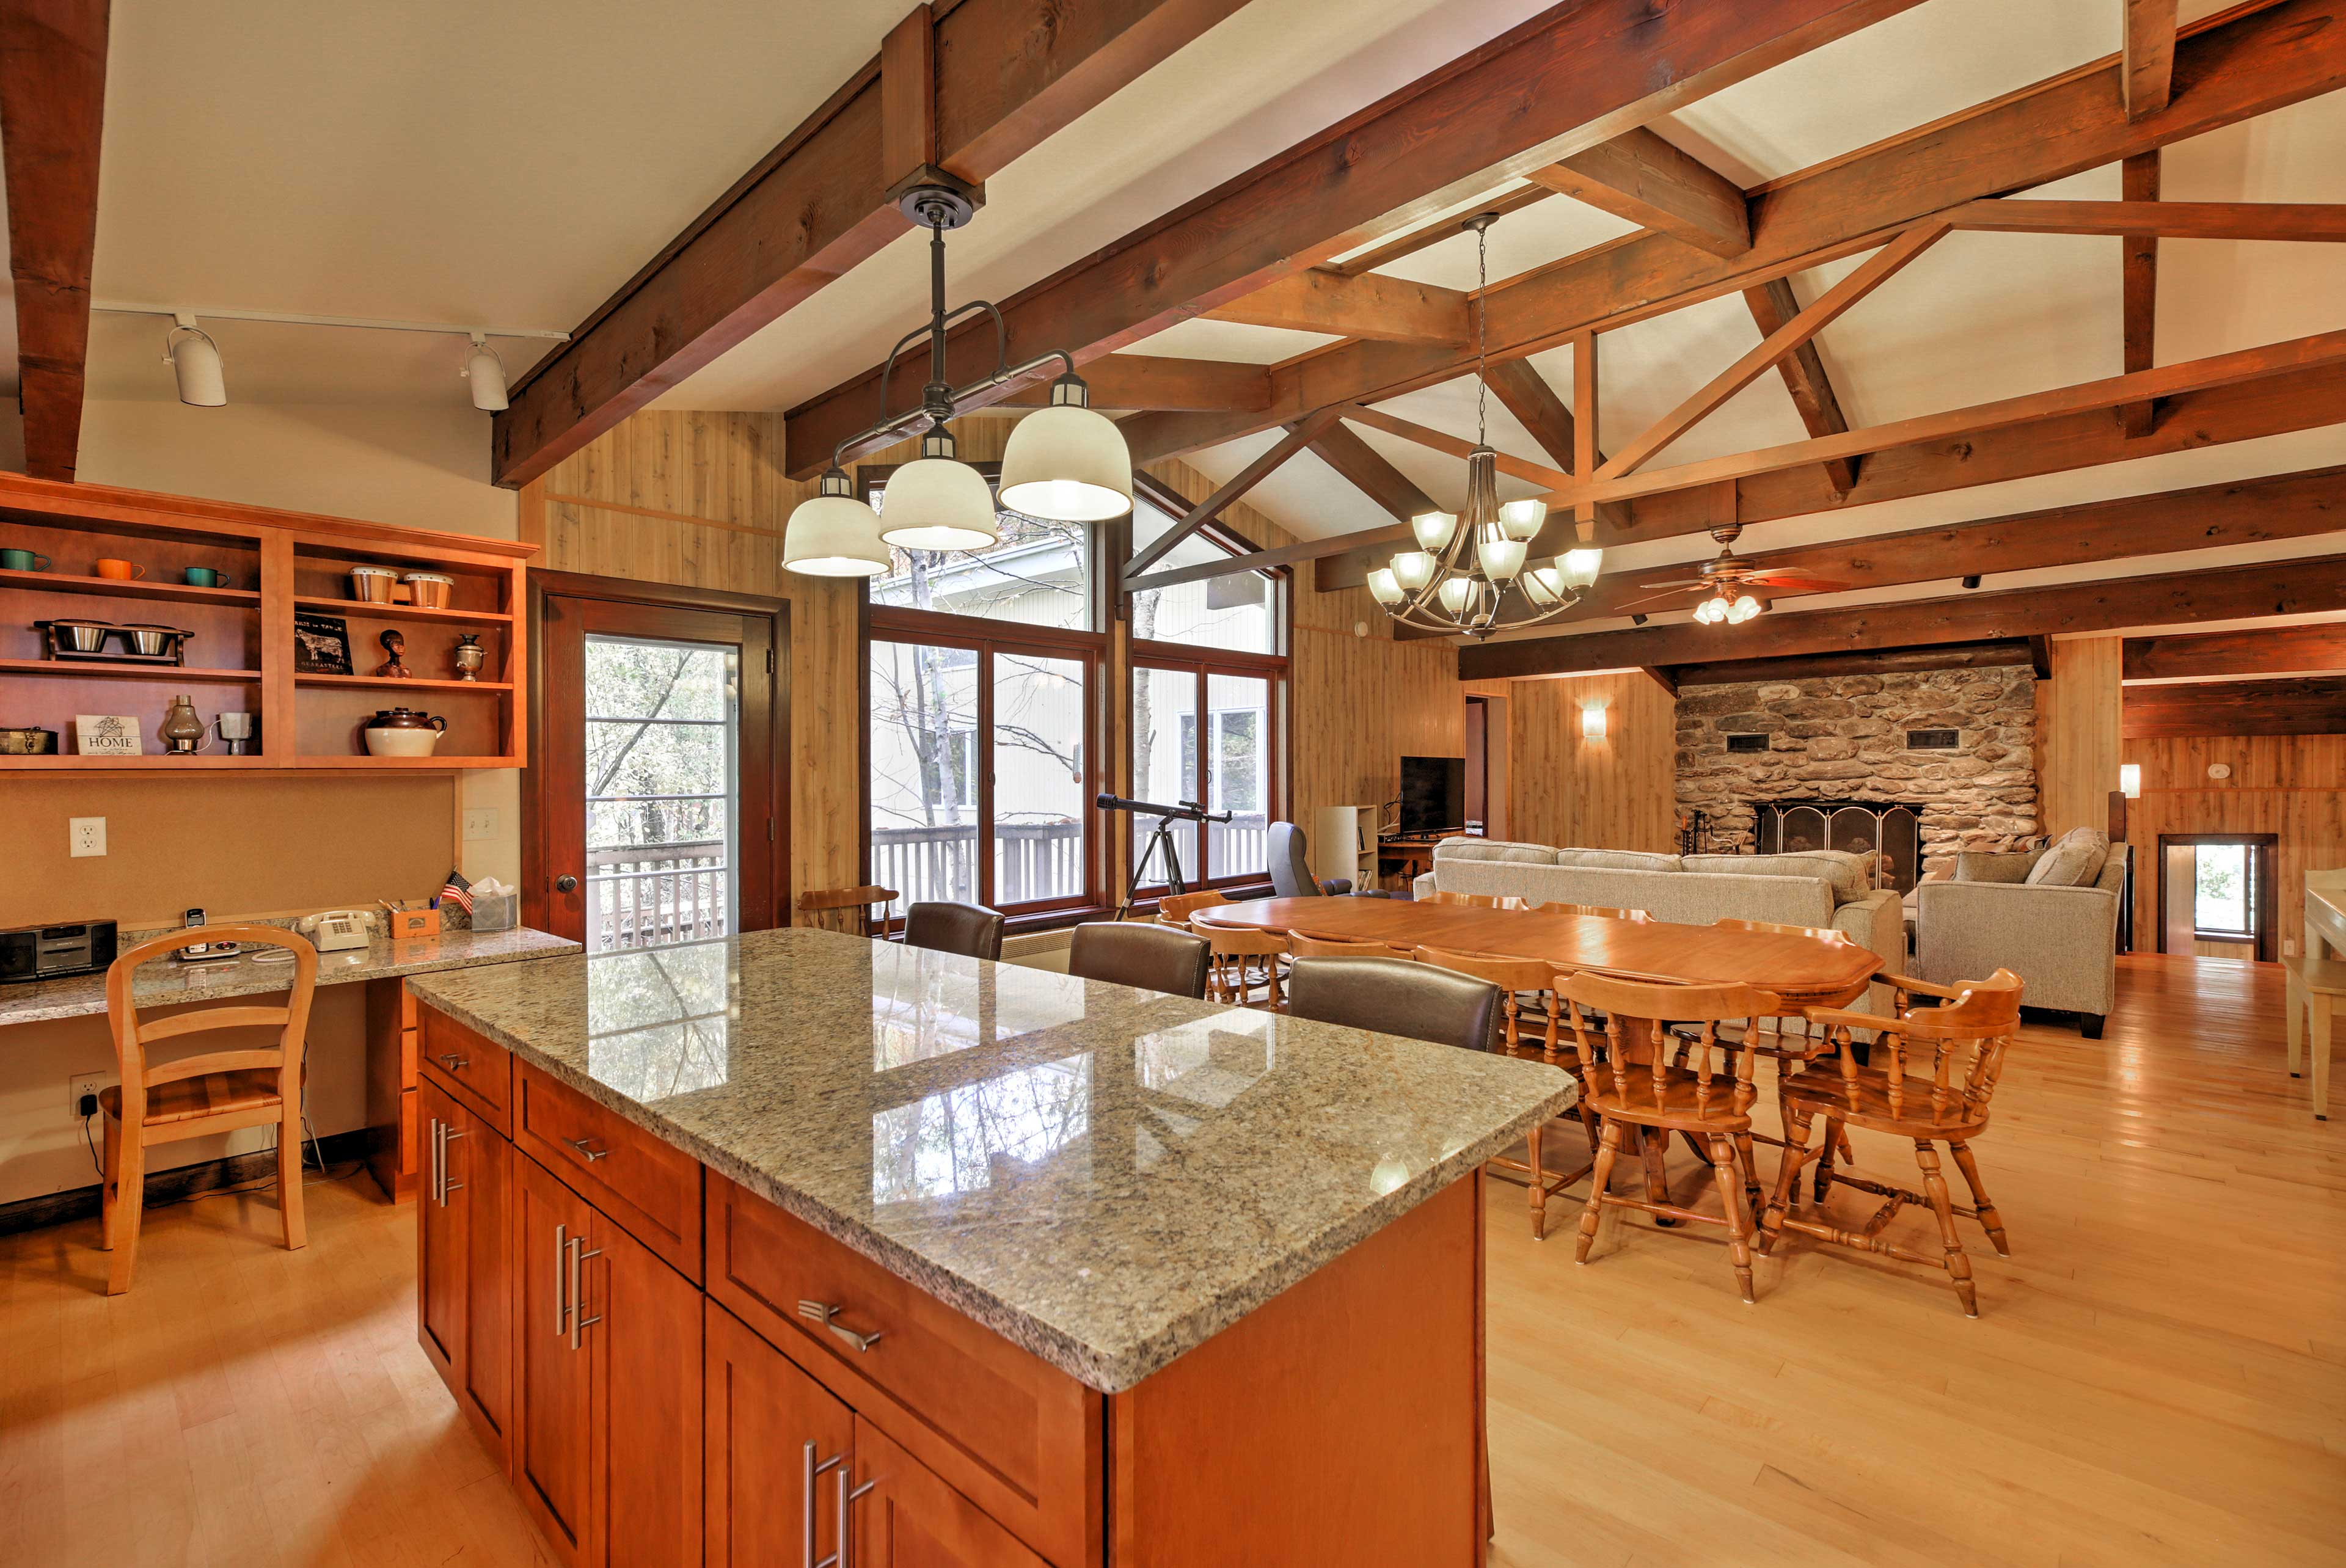 The fully equipped kitchen features granite countertops and a large island.